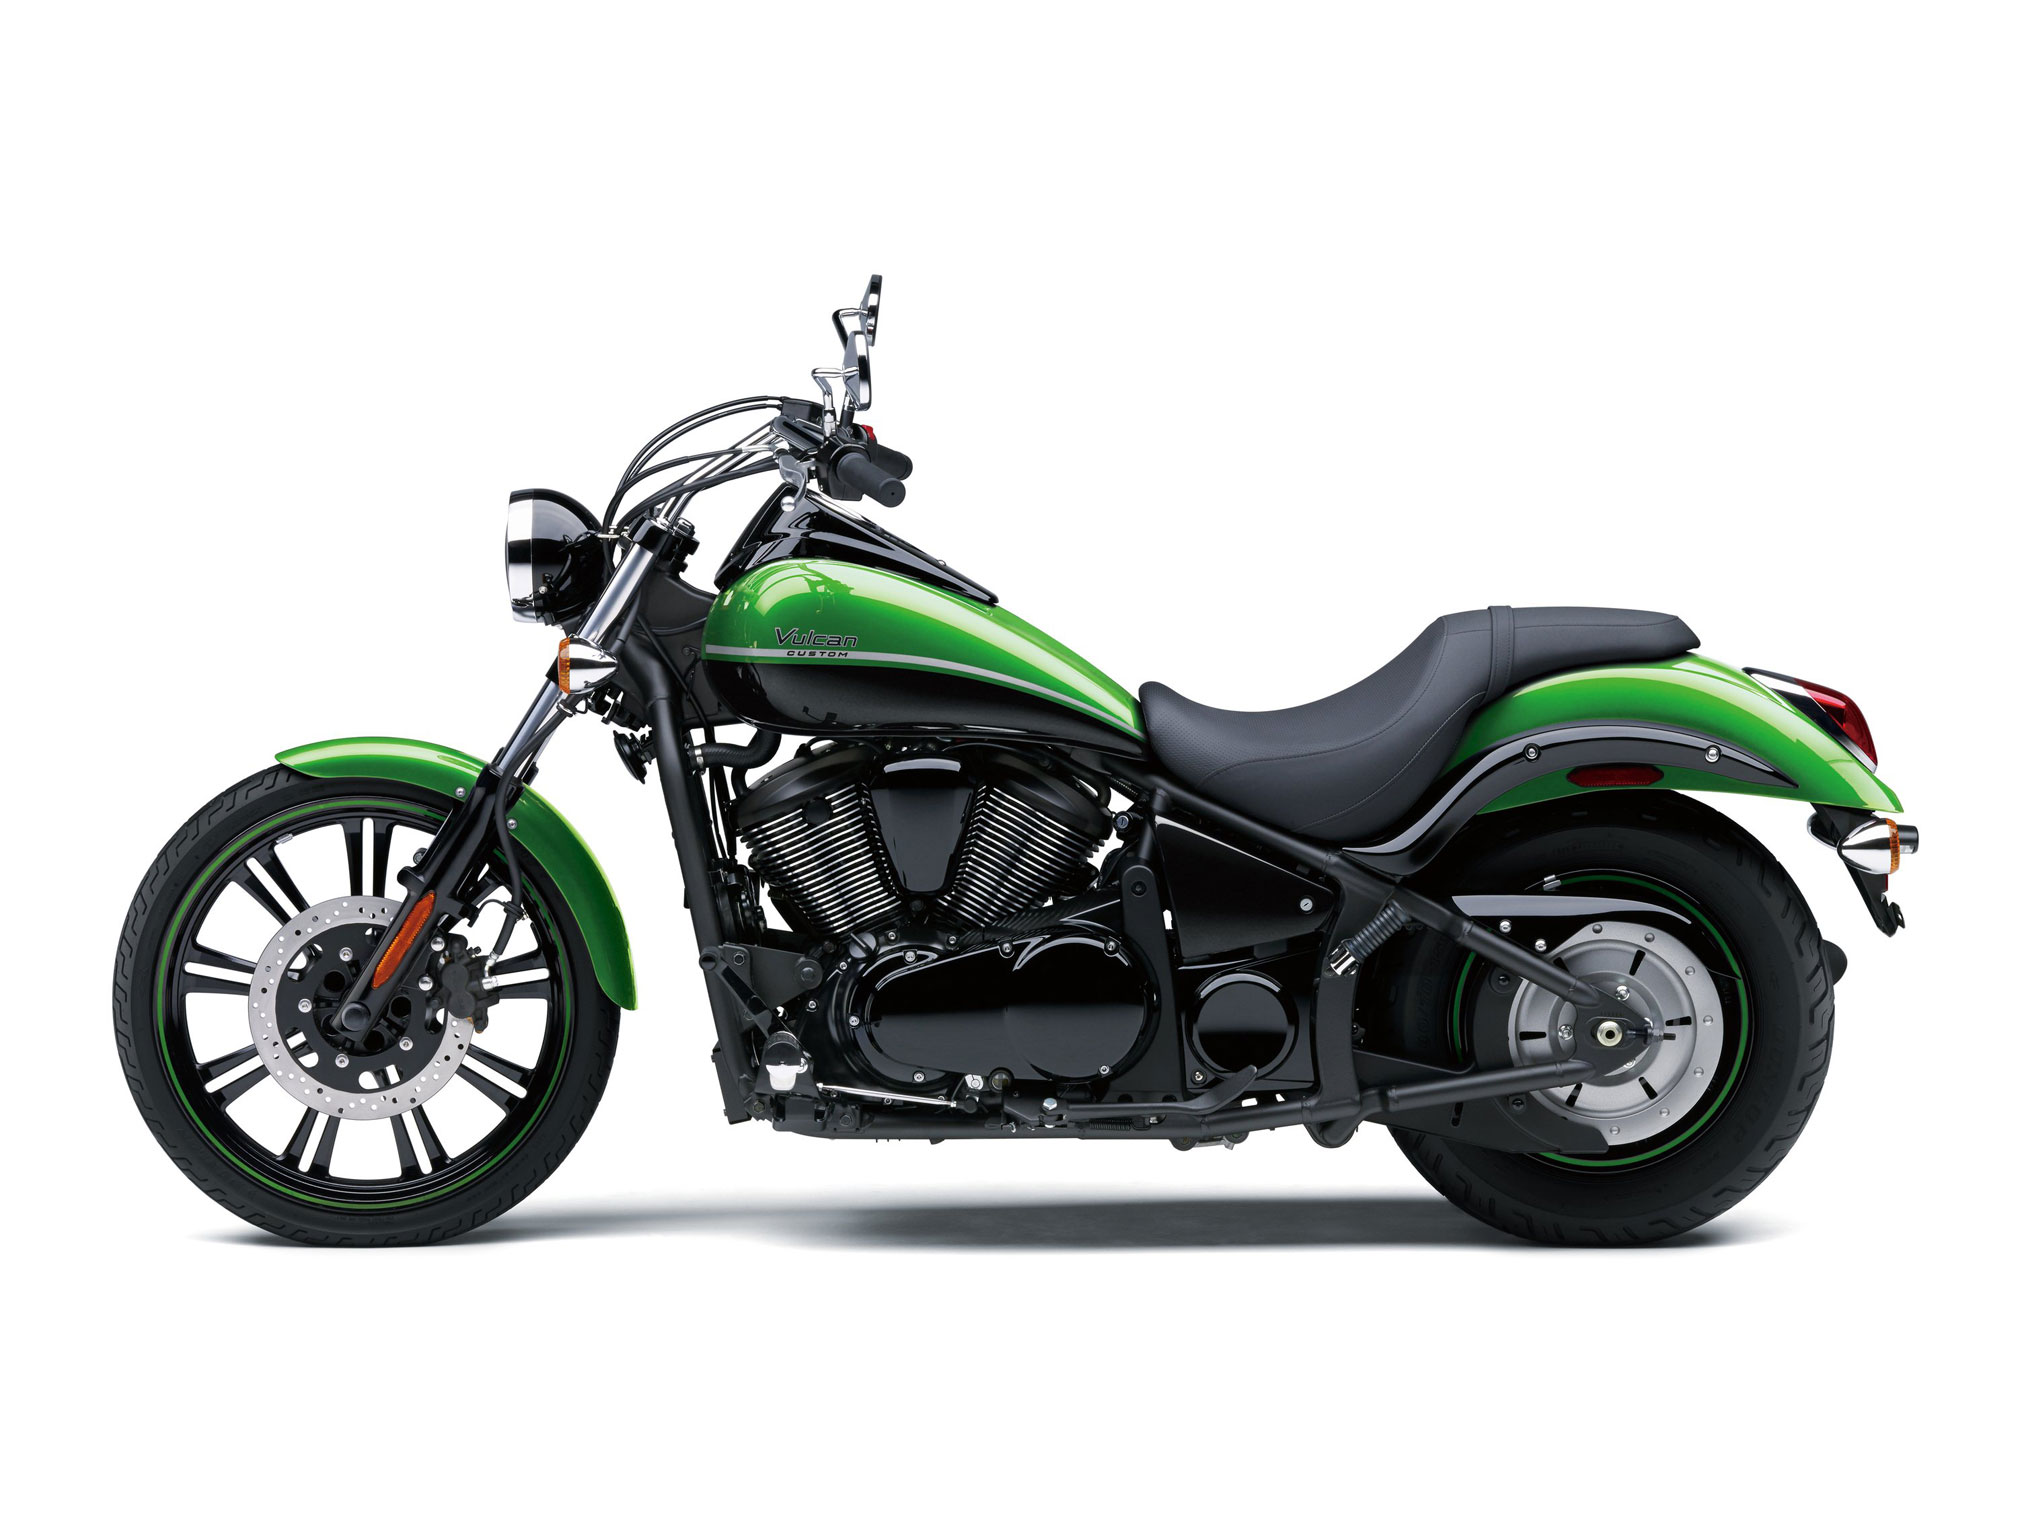 2018 kawasaki vulcan 900 custom review totalmotorcycle. Black Bedroom Furniture Sets. Home Design Ideas